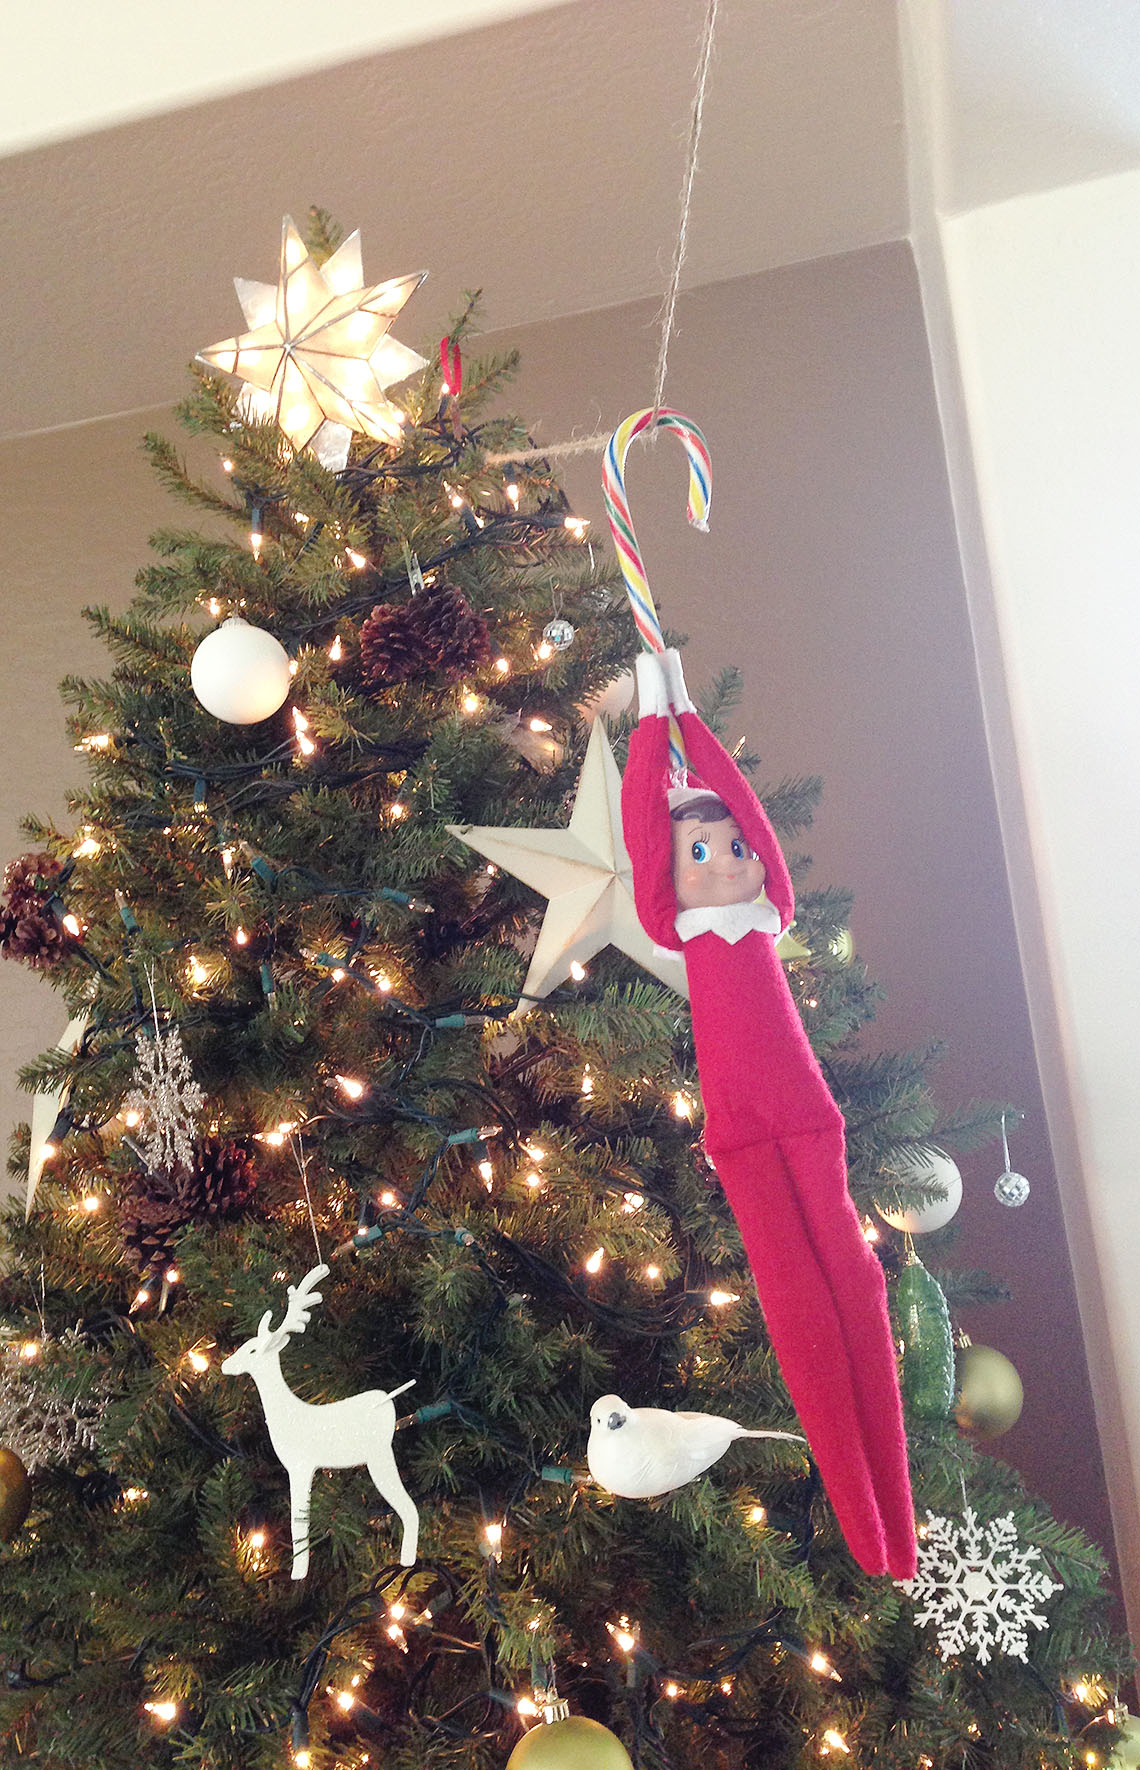 Elf ziplines from the Christmas tree.